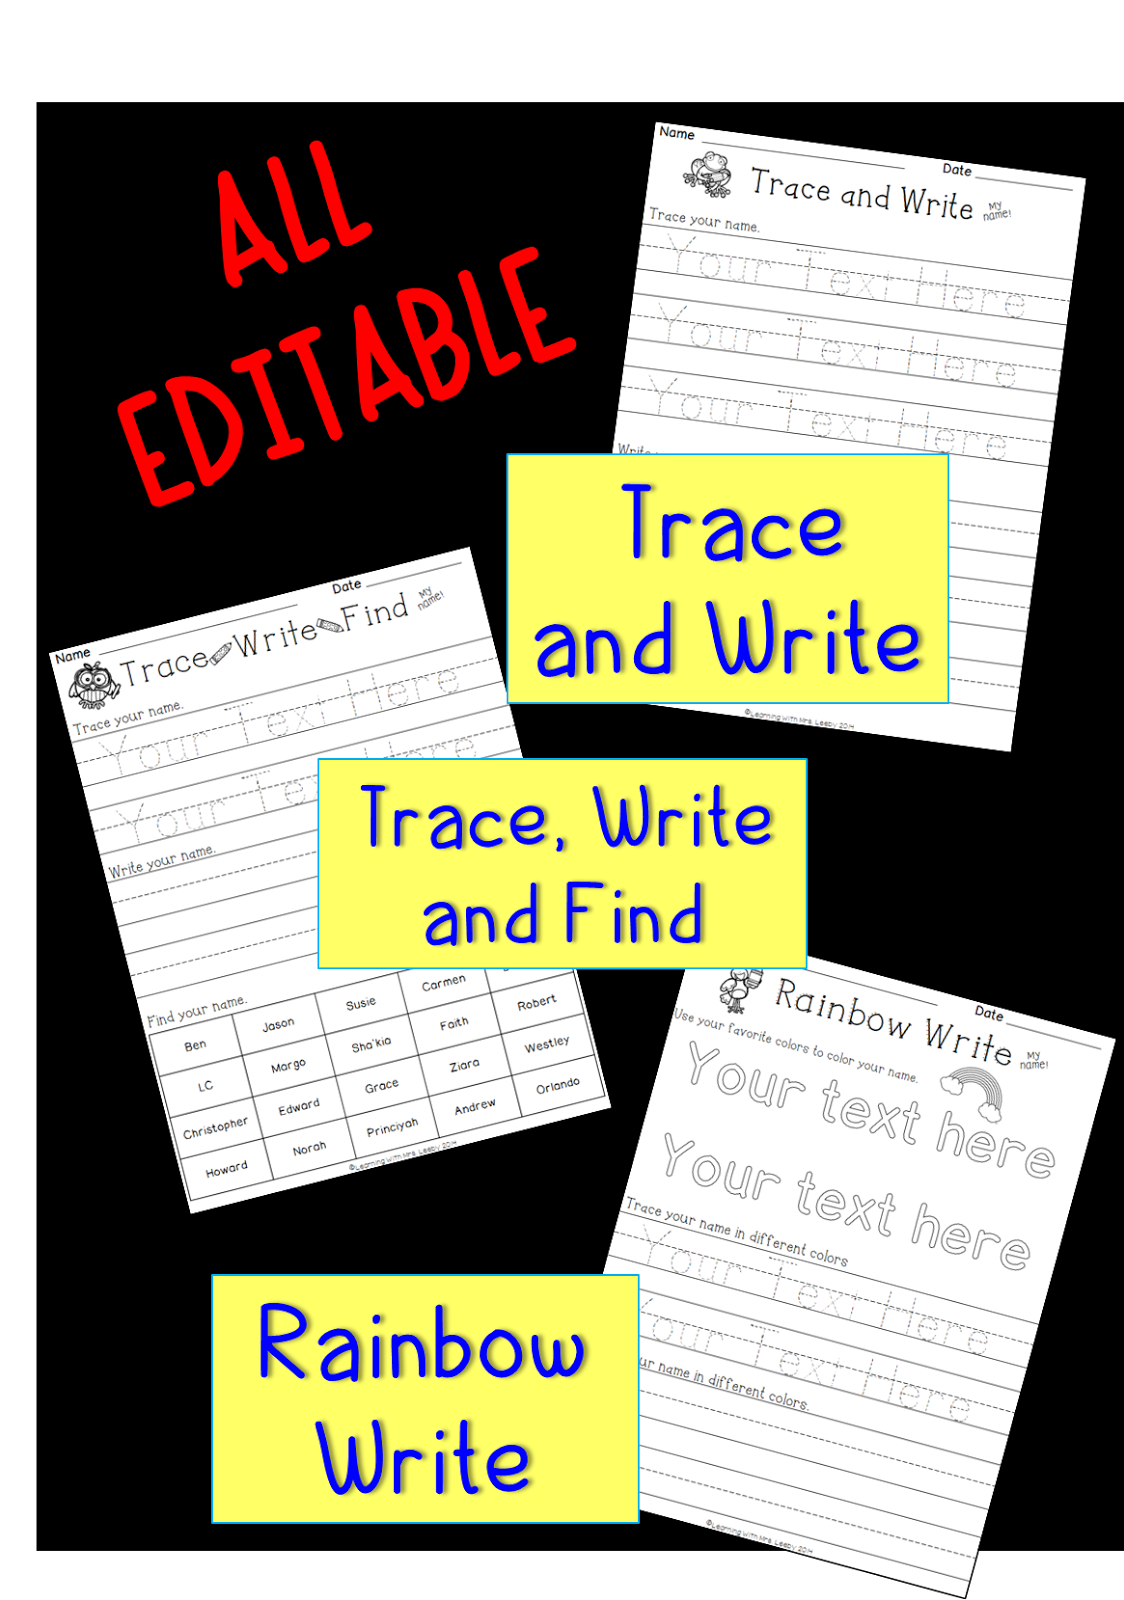 Editable Name Plates And Worksheets Are Here